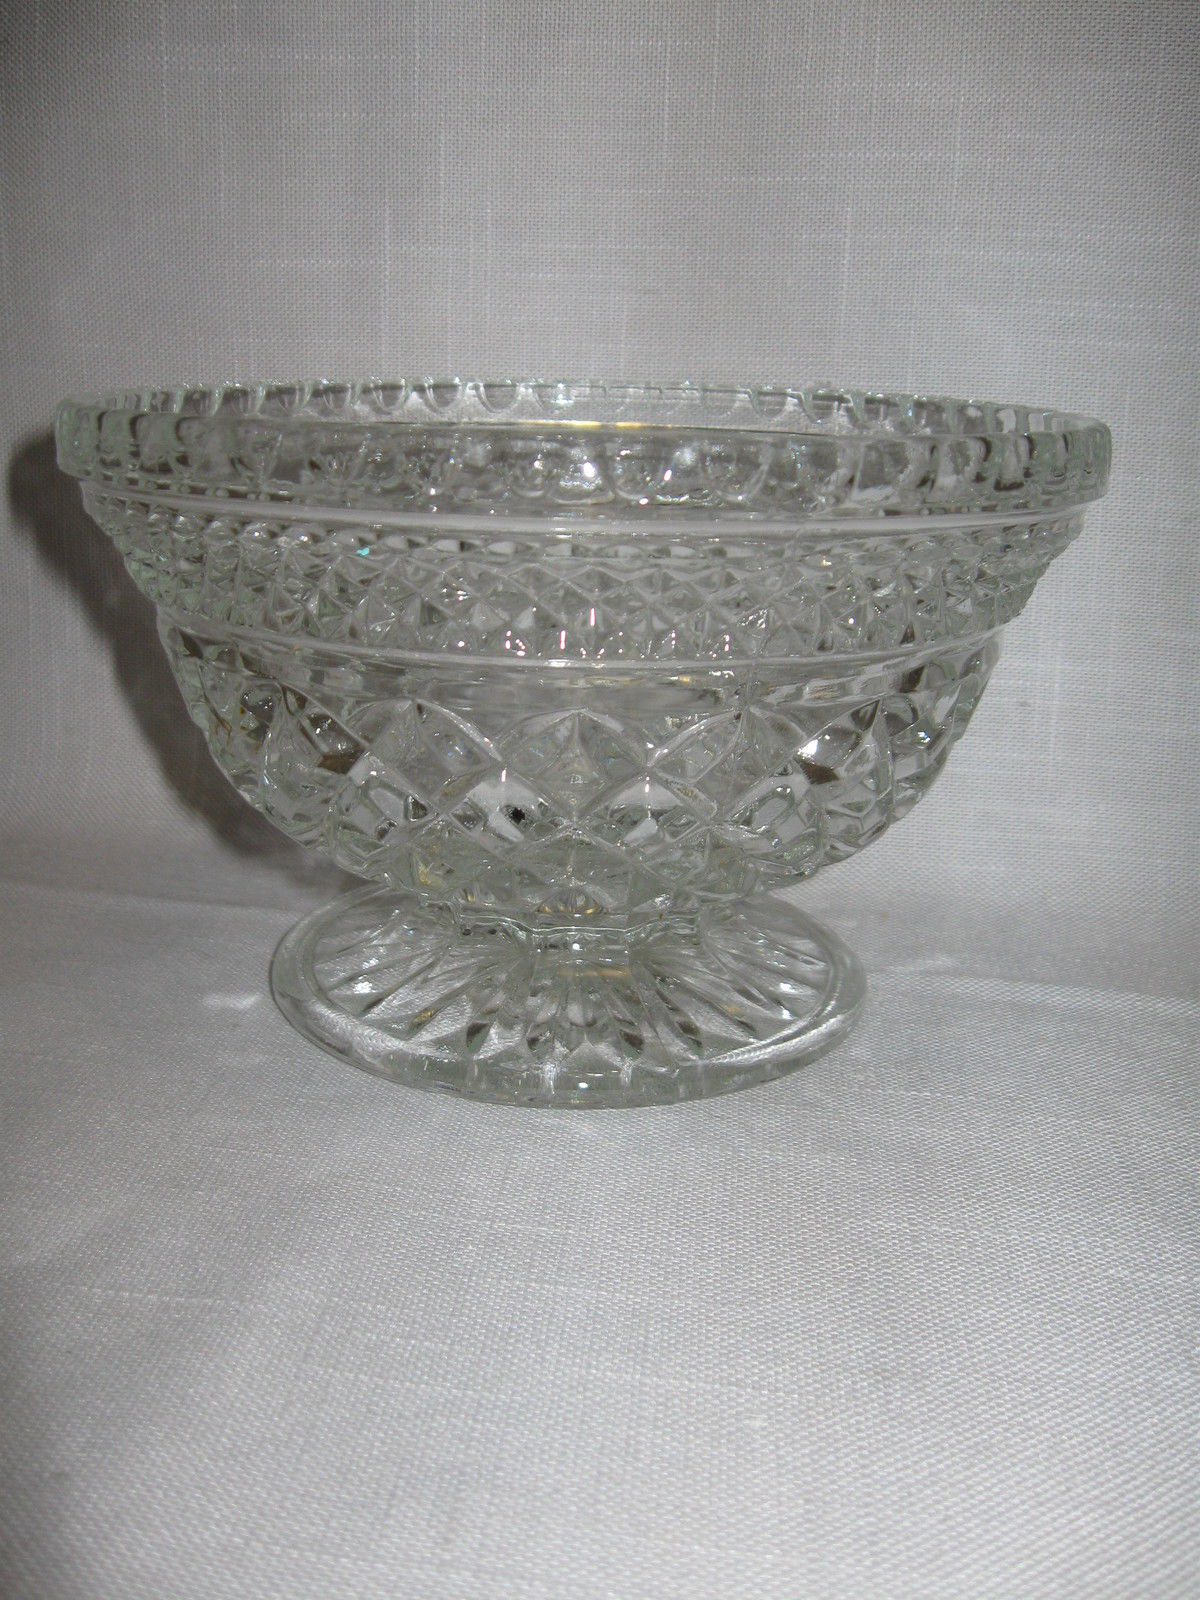 Wexford Pattern Candy Dish Only Anchor Hocking Glass Co 1967-2000 - $9.95